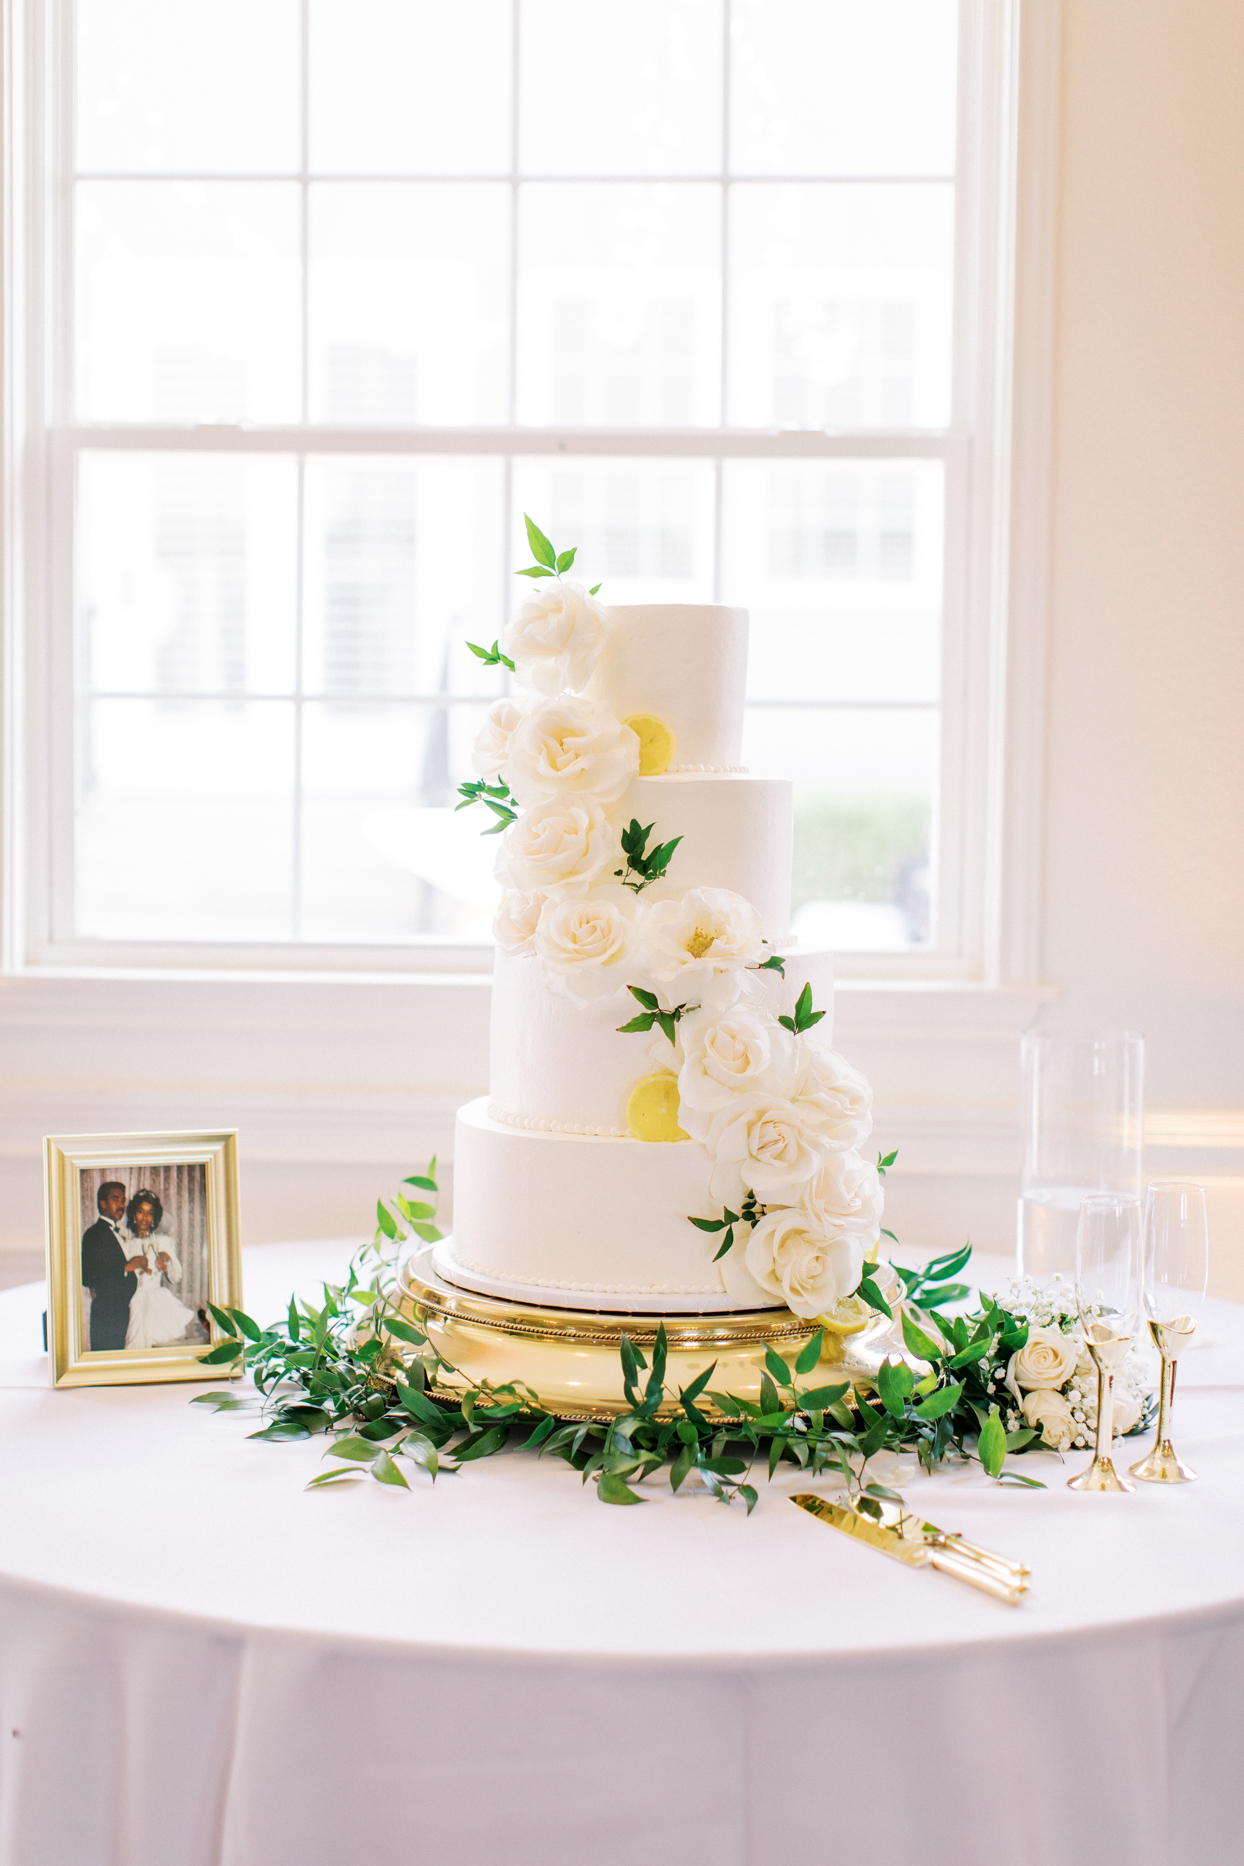 four tiered white frosted wedding cake with white rose accents